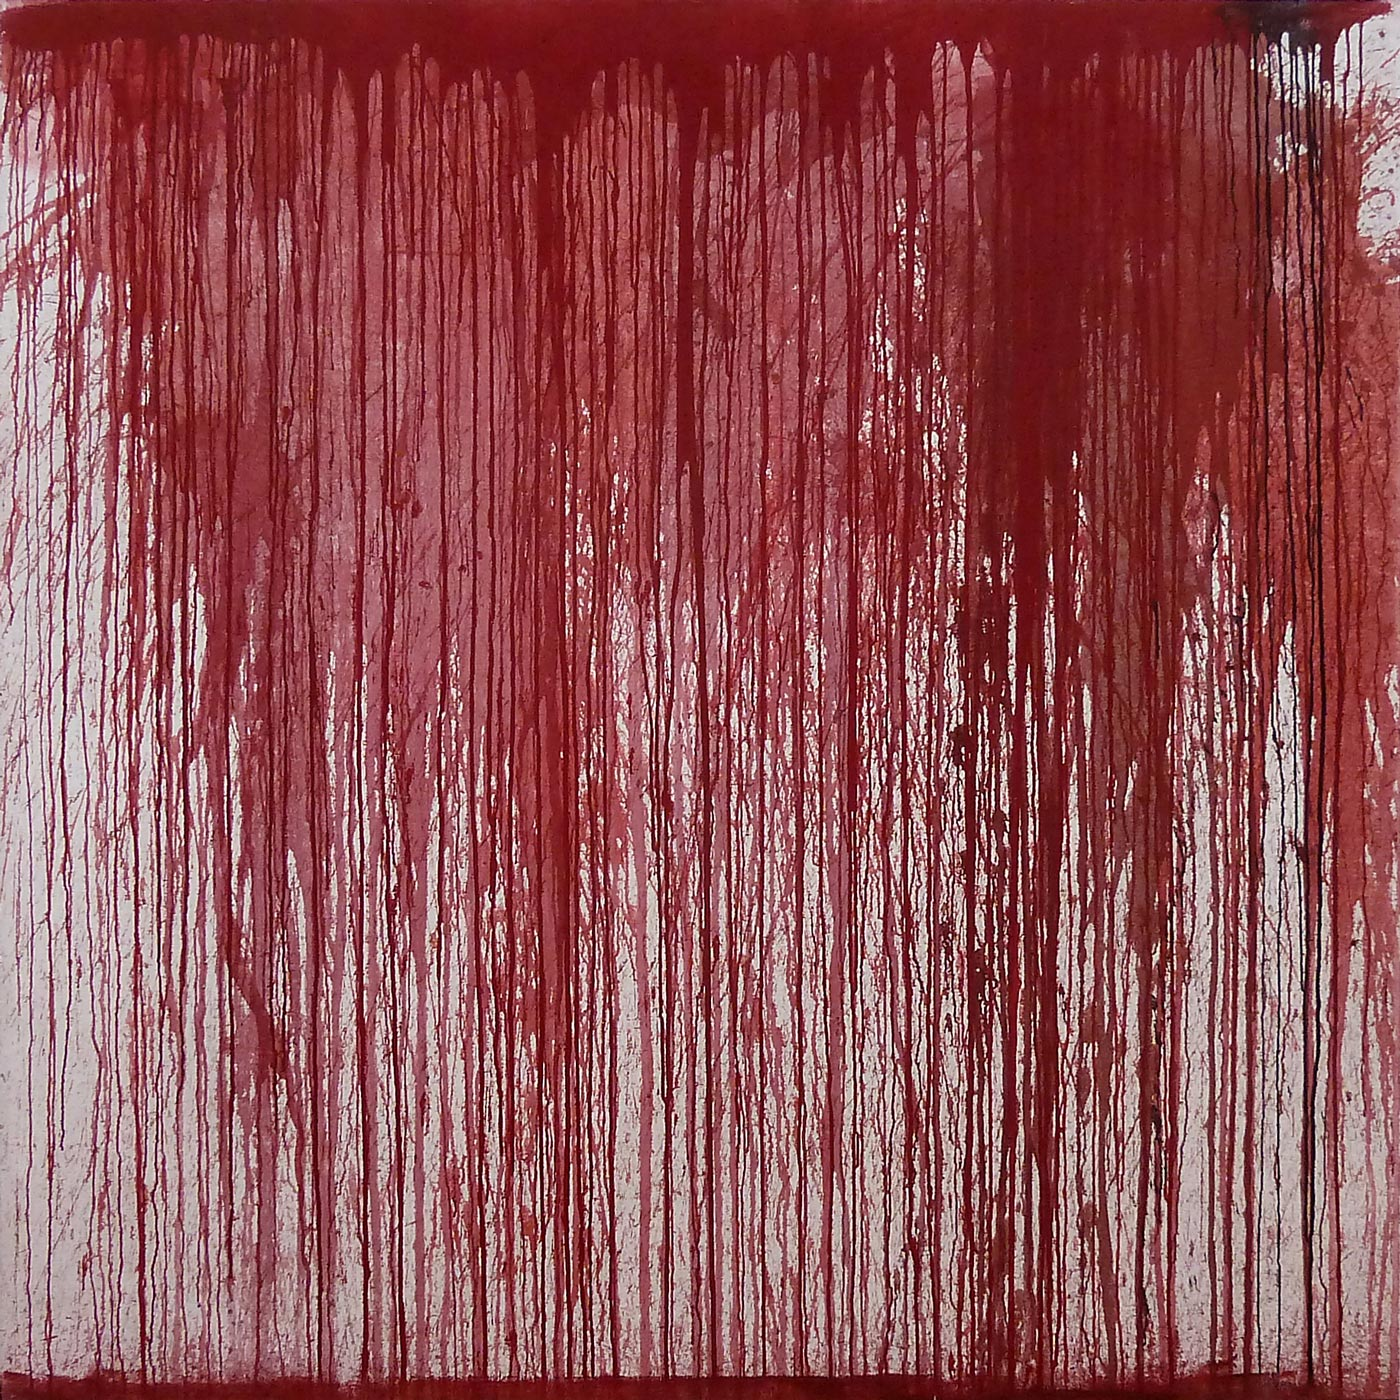 Hermann Nitsch 2013 Acrylic on Canvas 78 3/4 x 78 3/4 in 200 x 200 cm 2015 Marc Straus Gallery